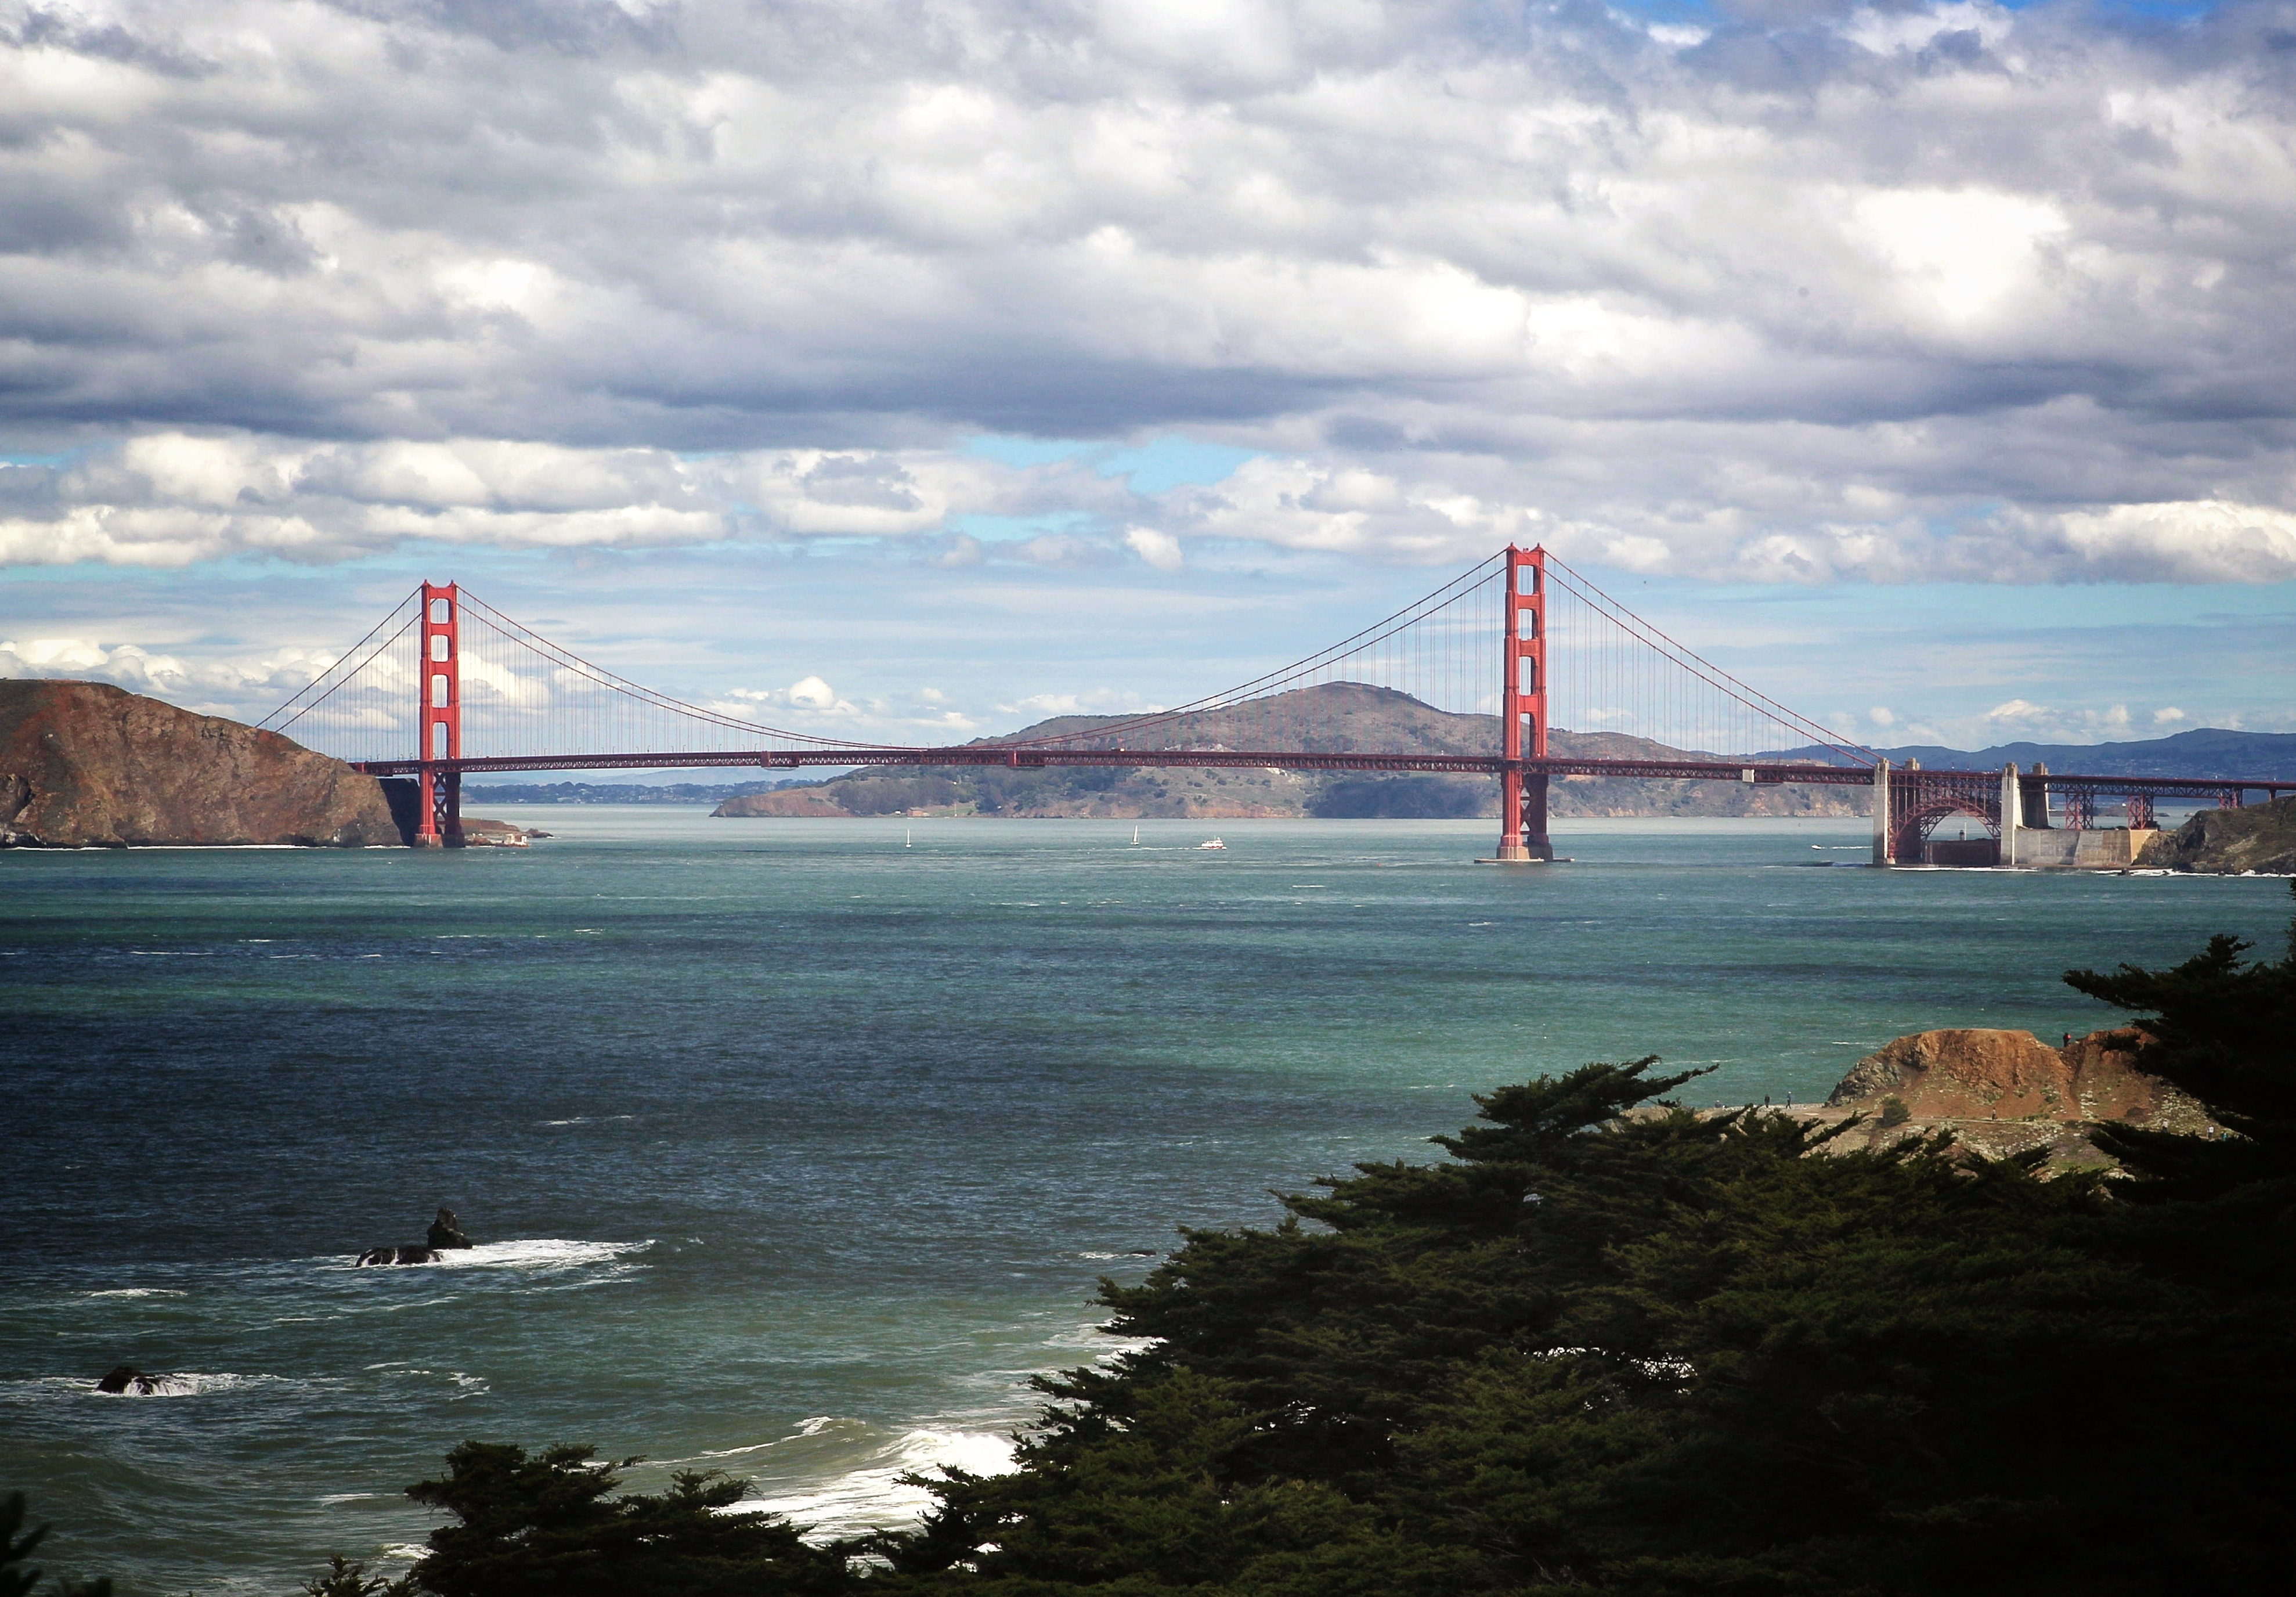 The Golden Gate Bridge from Land's End in San Francisco